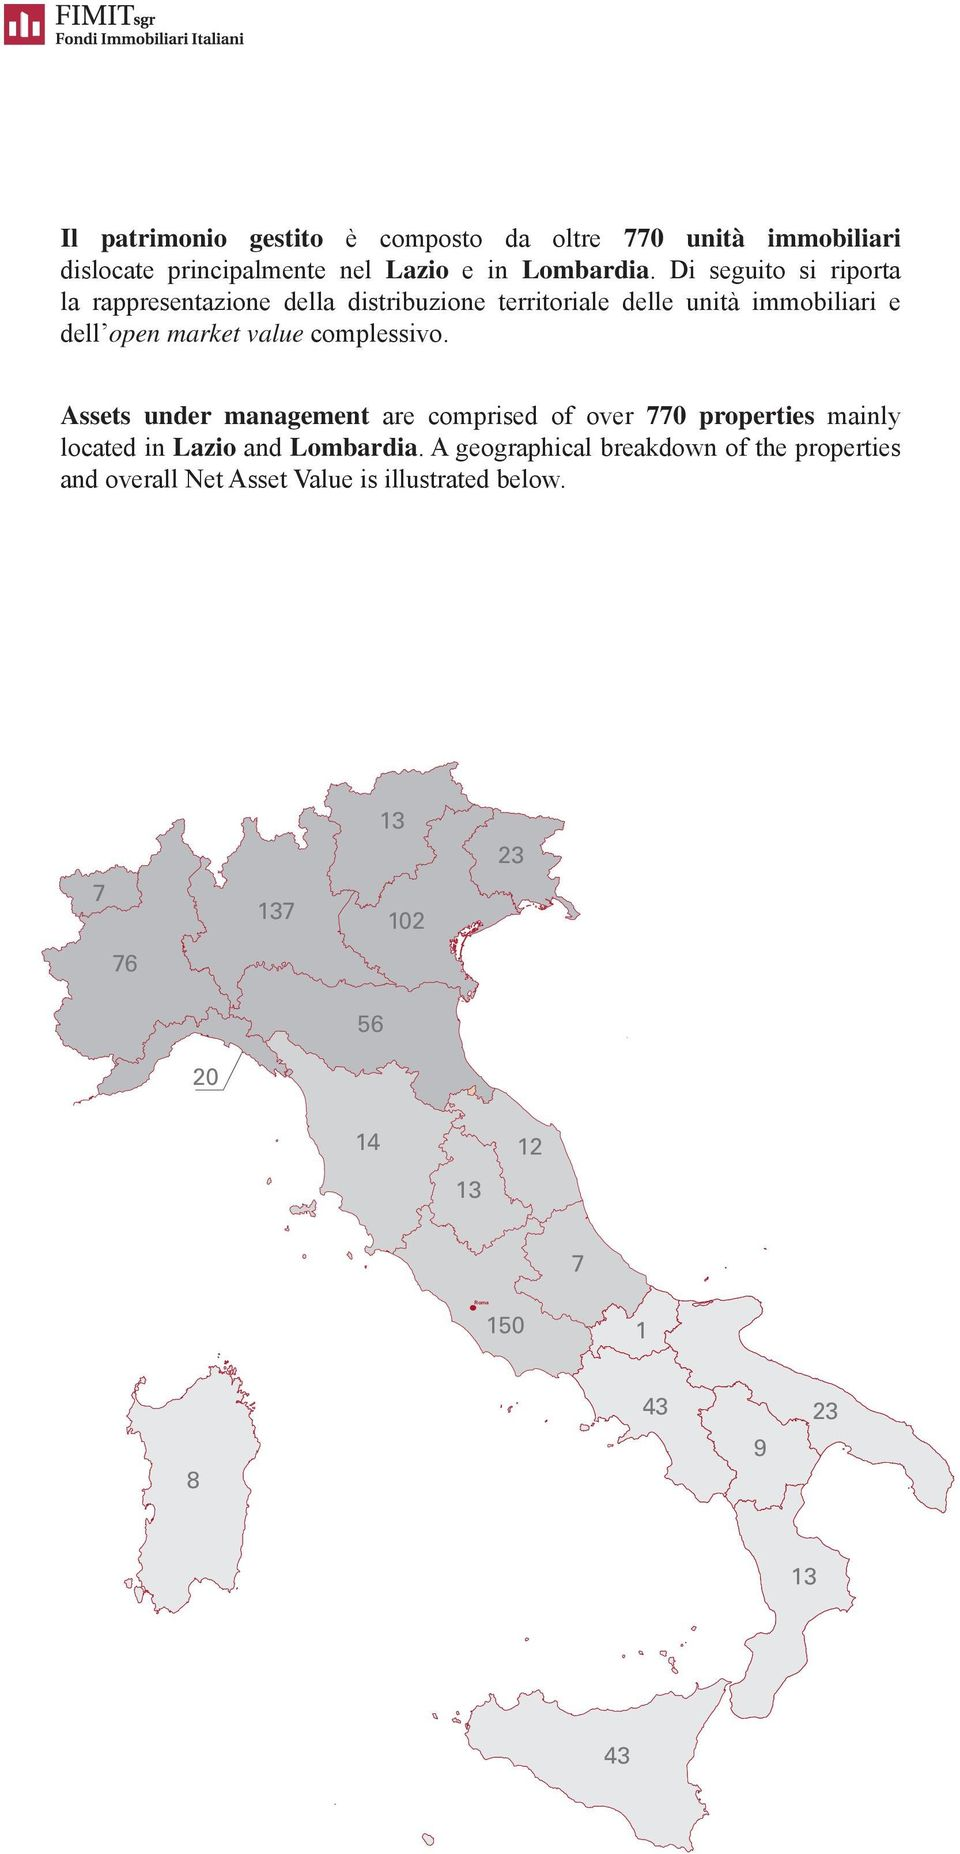 complessivo. Assets under management are comprised of over 770 properties mainly located in Lazio and Lombardia.